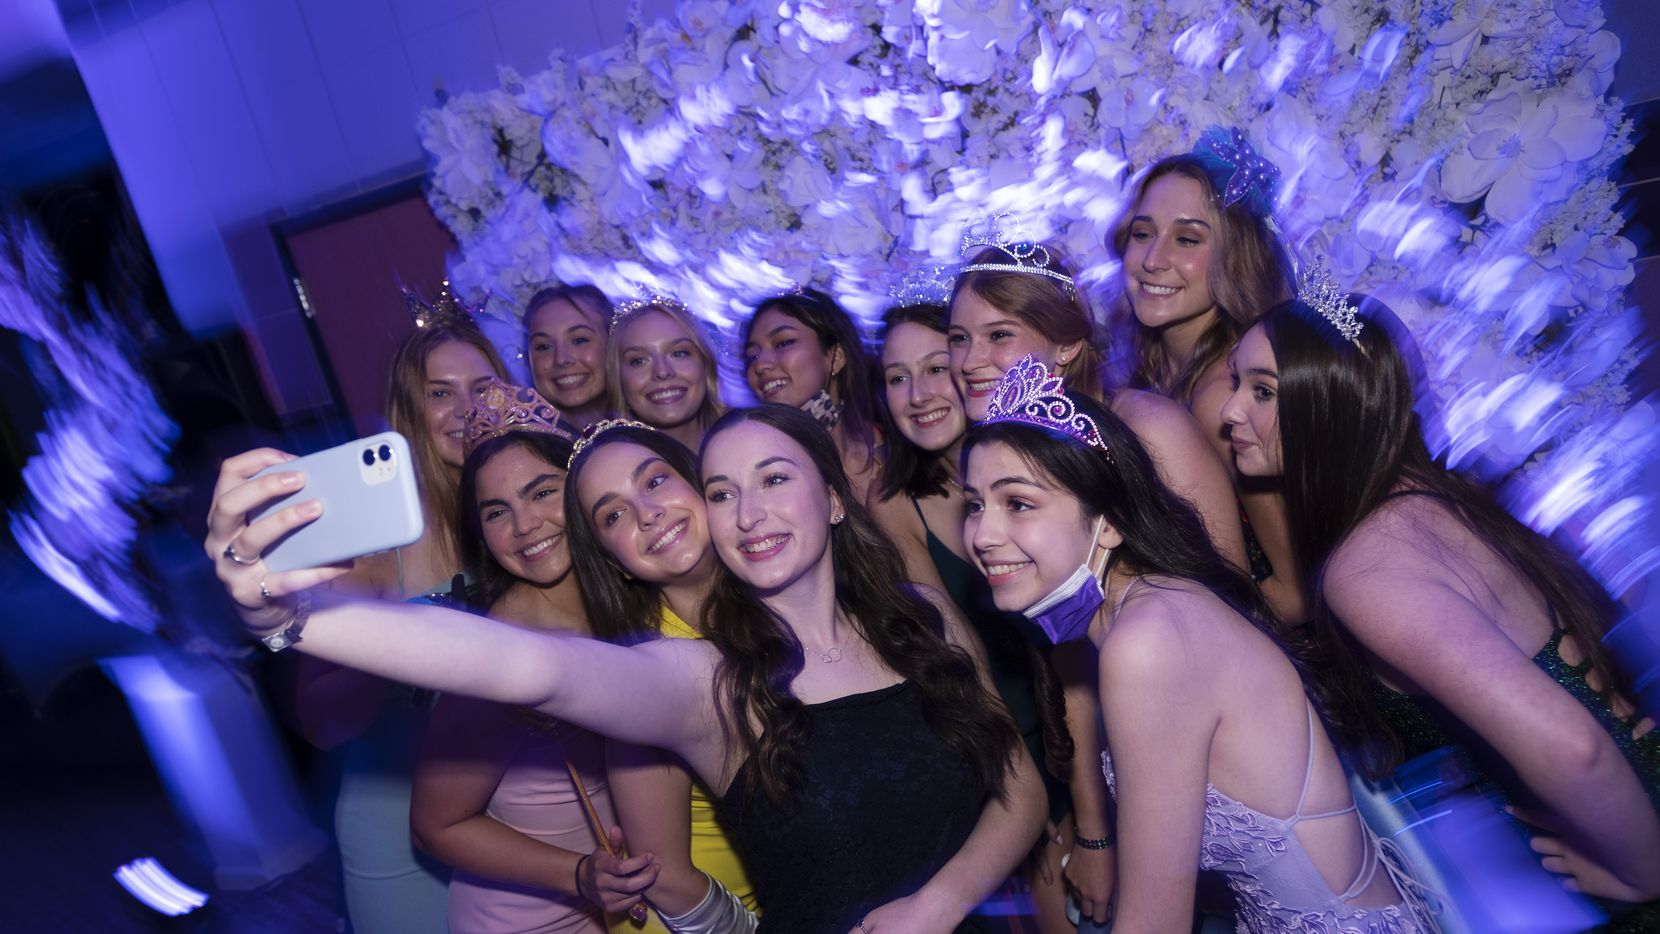 """Richardson High School senior Gracie Oliver, 18, center, takes a selfie with friends during the """"Walk Down Memory Lane"""" even the school hosted for its graduates. The event showcased a slideshow of the seniors, a red carpet experience and plenty of photo opportunities. Oliver entered her senior year not fully knowing what to expect and wondering whether her class would get to have a """"traditional"""" graduation."""